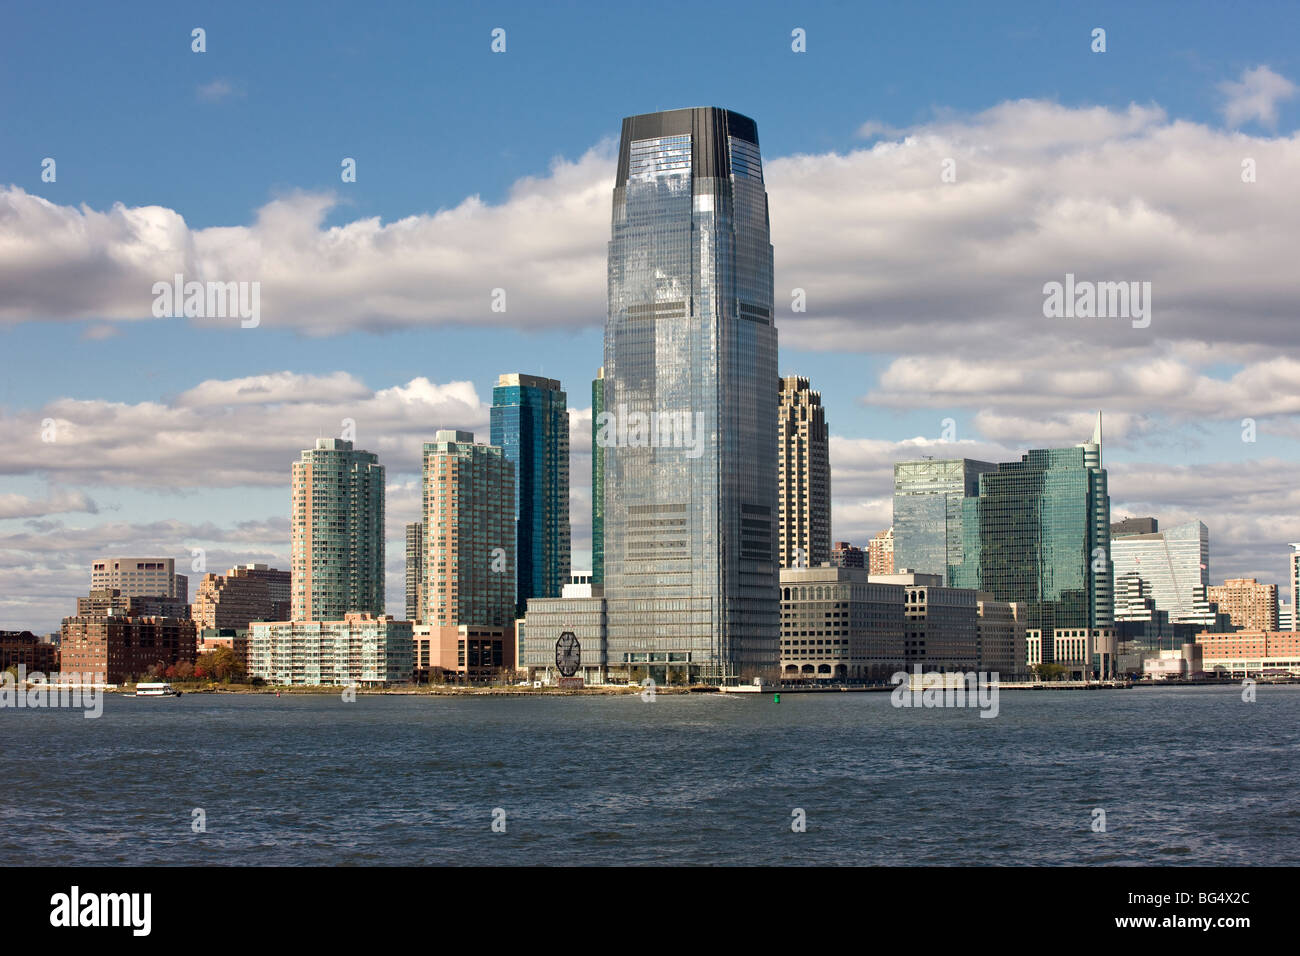 Jersey City, New Jersey, seen from the harbor of New York City, New York, USA - Stock Image